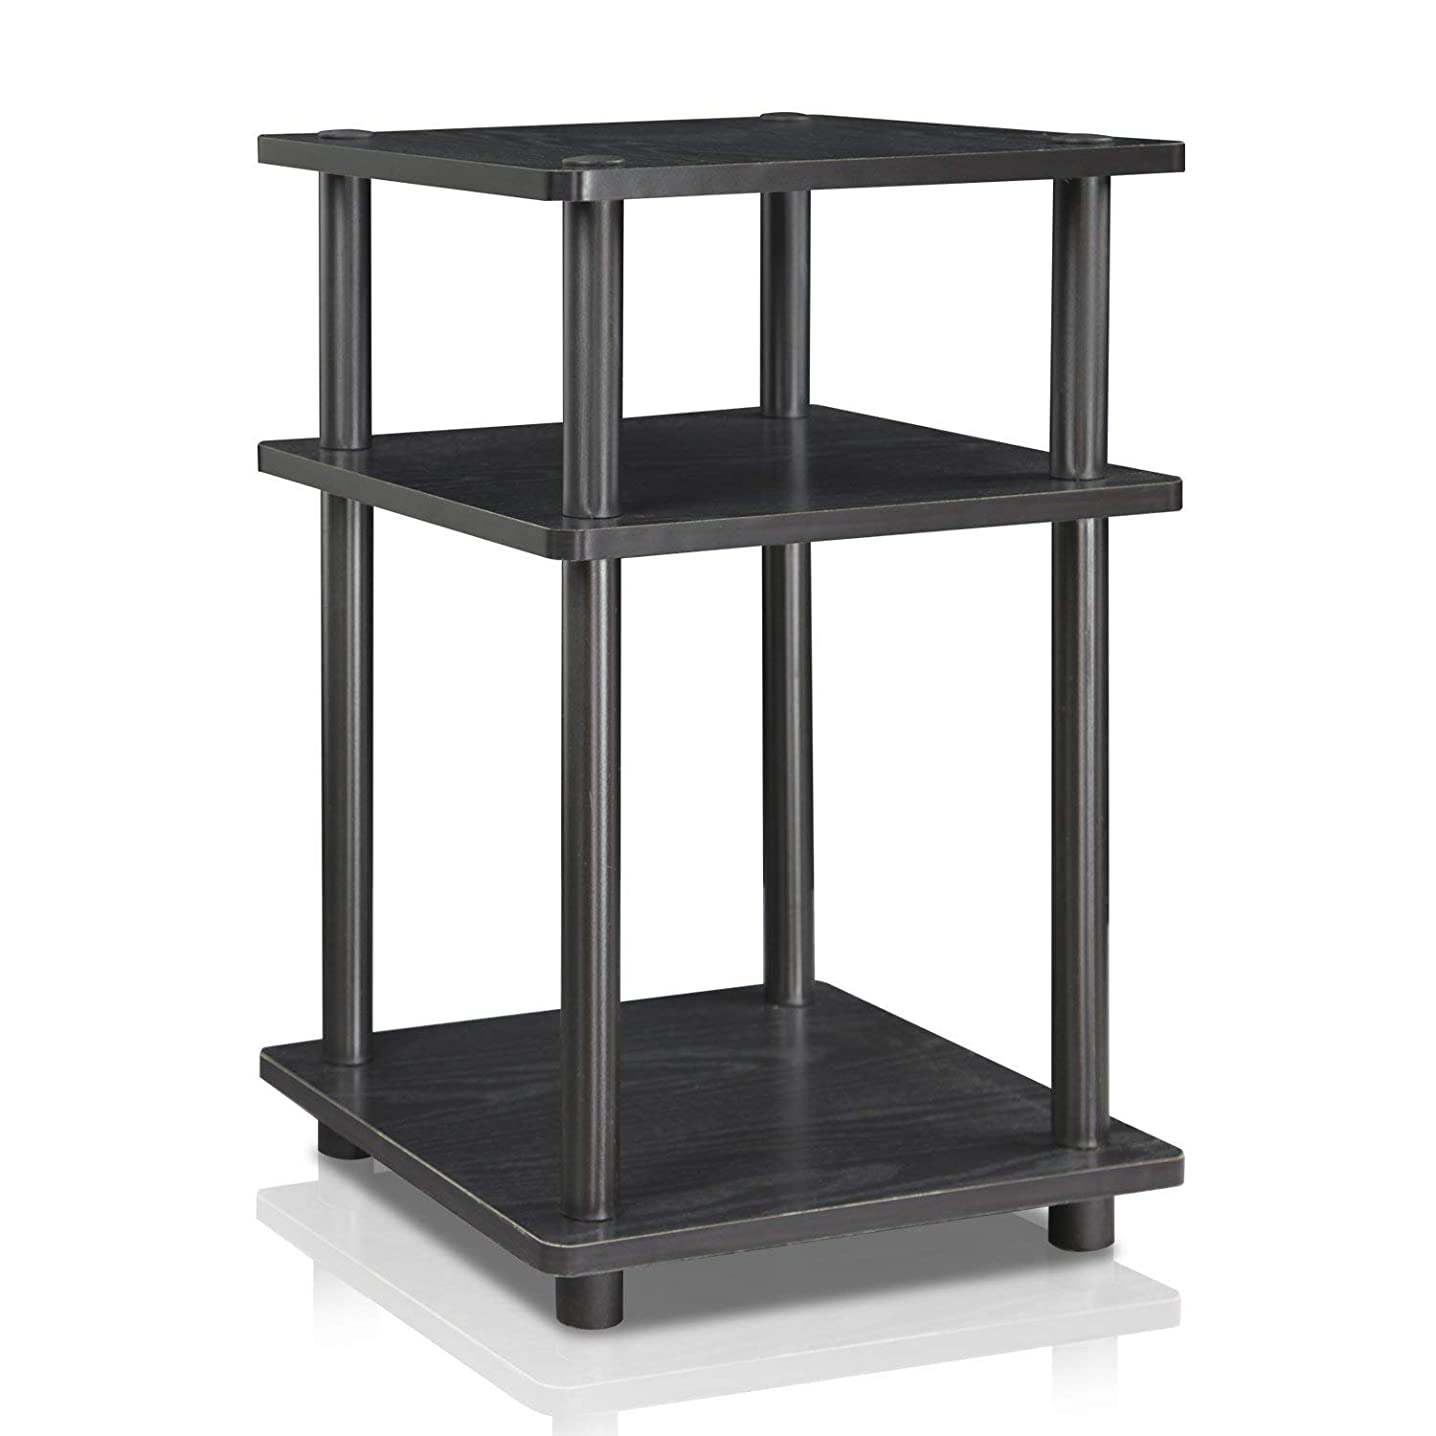 Furinno 15095BW/BK Turn-N-Tube Multipurpose Shelf, Black